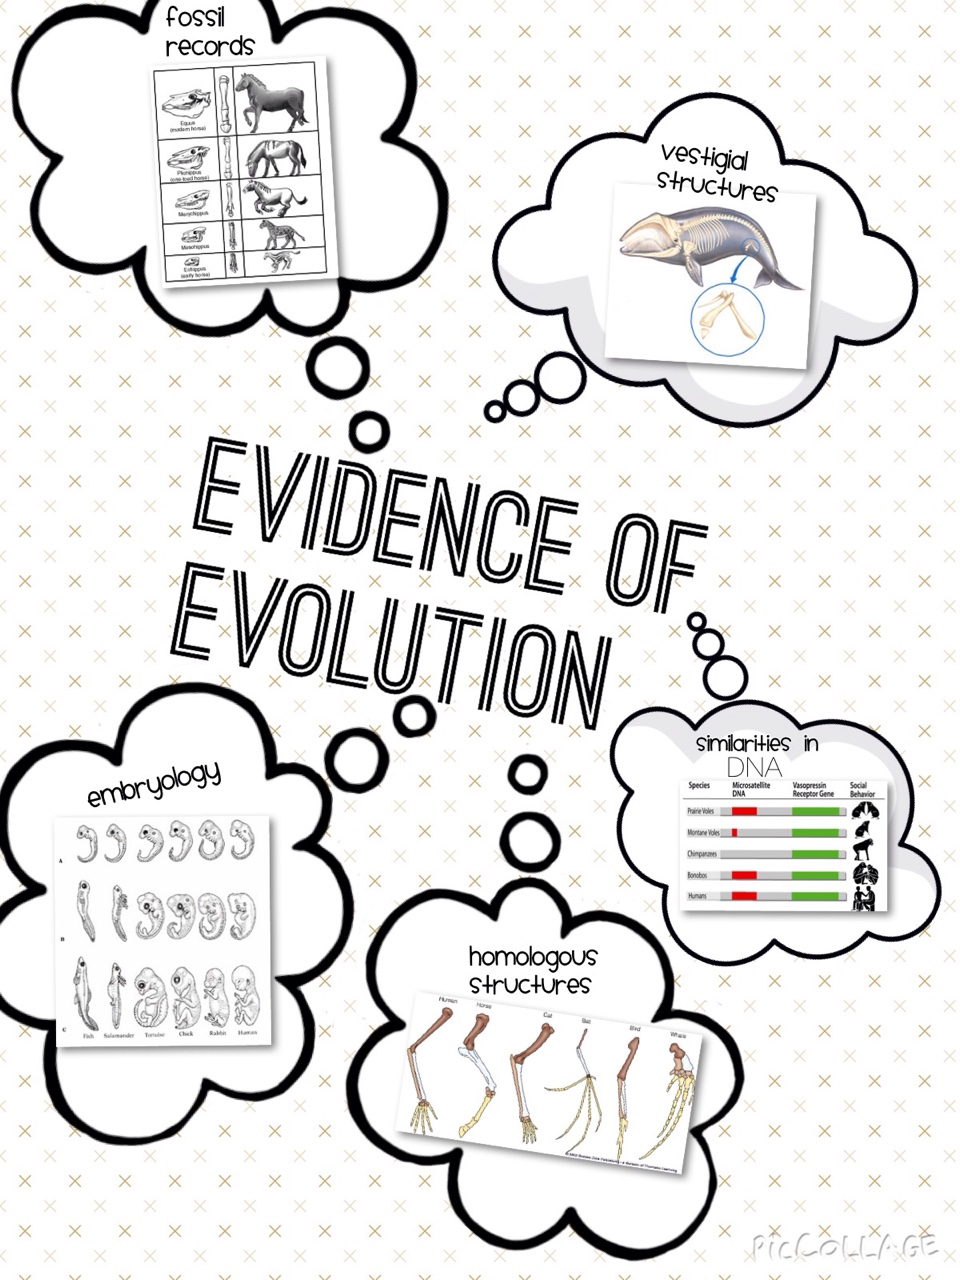 Hailey's Evidence of Evolution Project